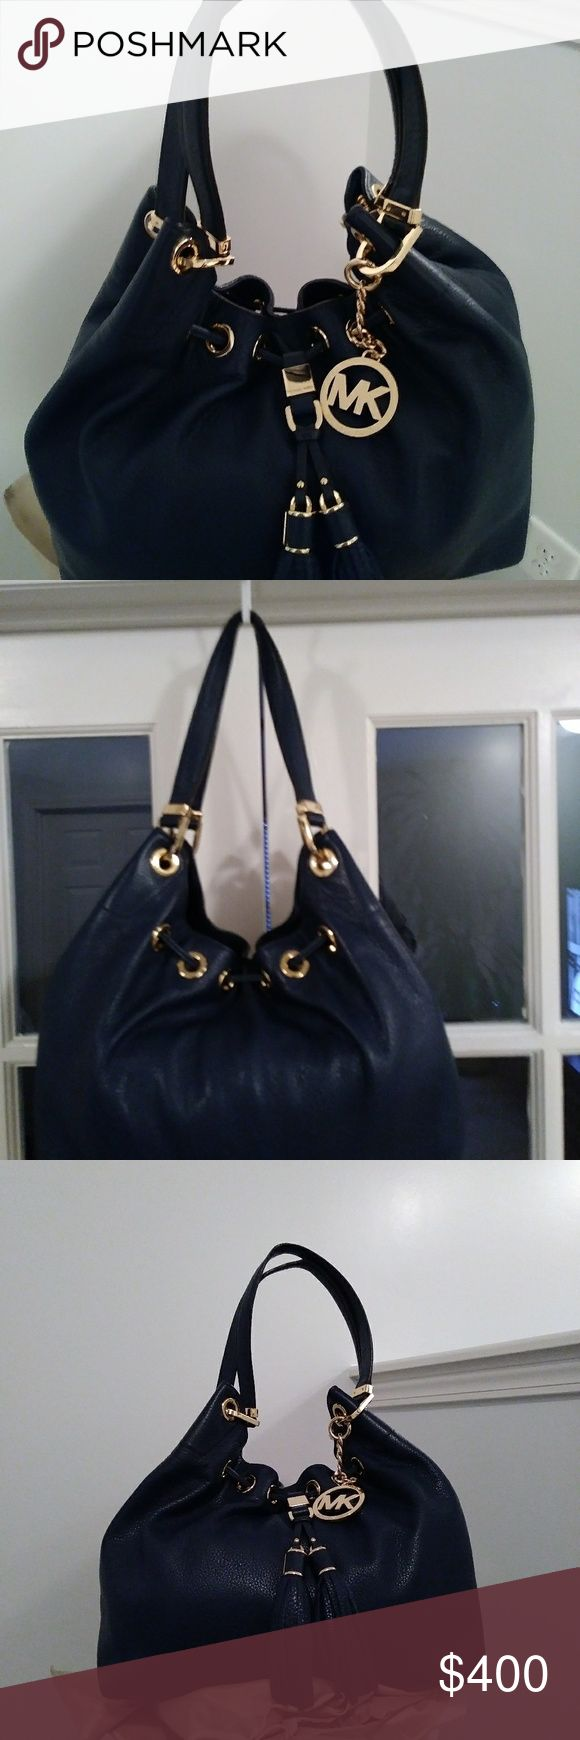 MICHAEL KORS NAVY BLUE CAMDEN DRAWSTRING PURSE *W/ MICHAEL KORS NAVY BLUE CAMDEN DRAWSTRING PURSE *W/WALLET* BUNDLE  Used about 5 times Magnetic clasp. Still has paper in some pockets.  Original Price with Wallet $520  Yours TODAY for $375  WBAG and a Special Gift:) Michael Kors Bags Shoulder Bags